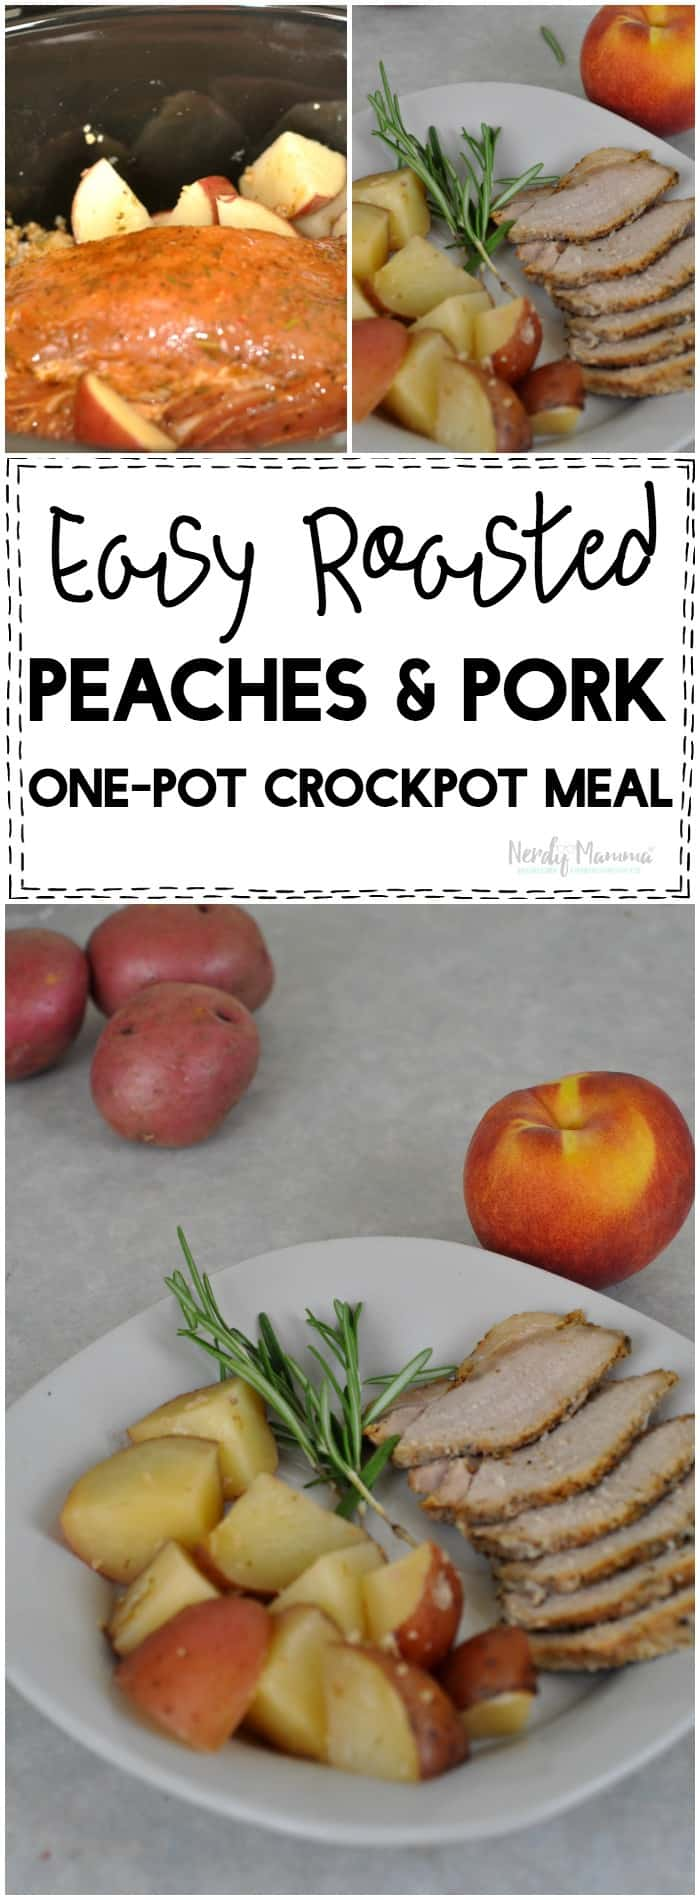 easy-roasted-peaches-pork-one-pot-crockpot-meal-pin